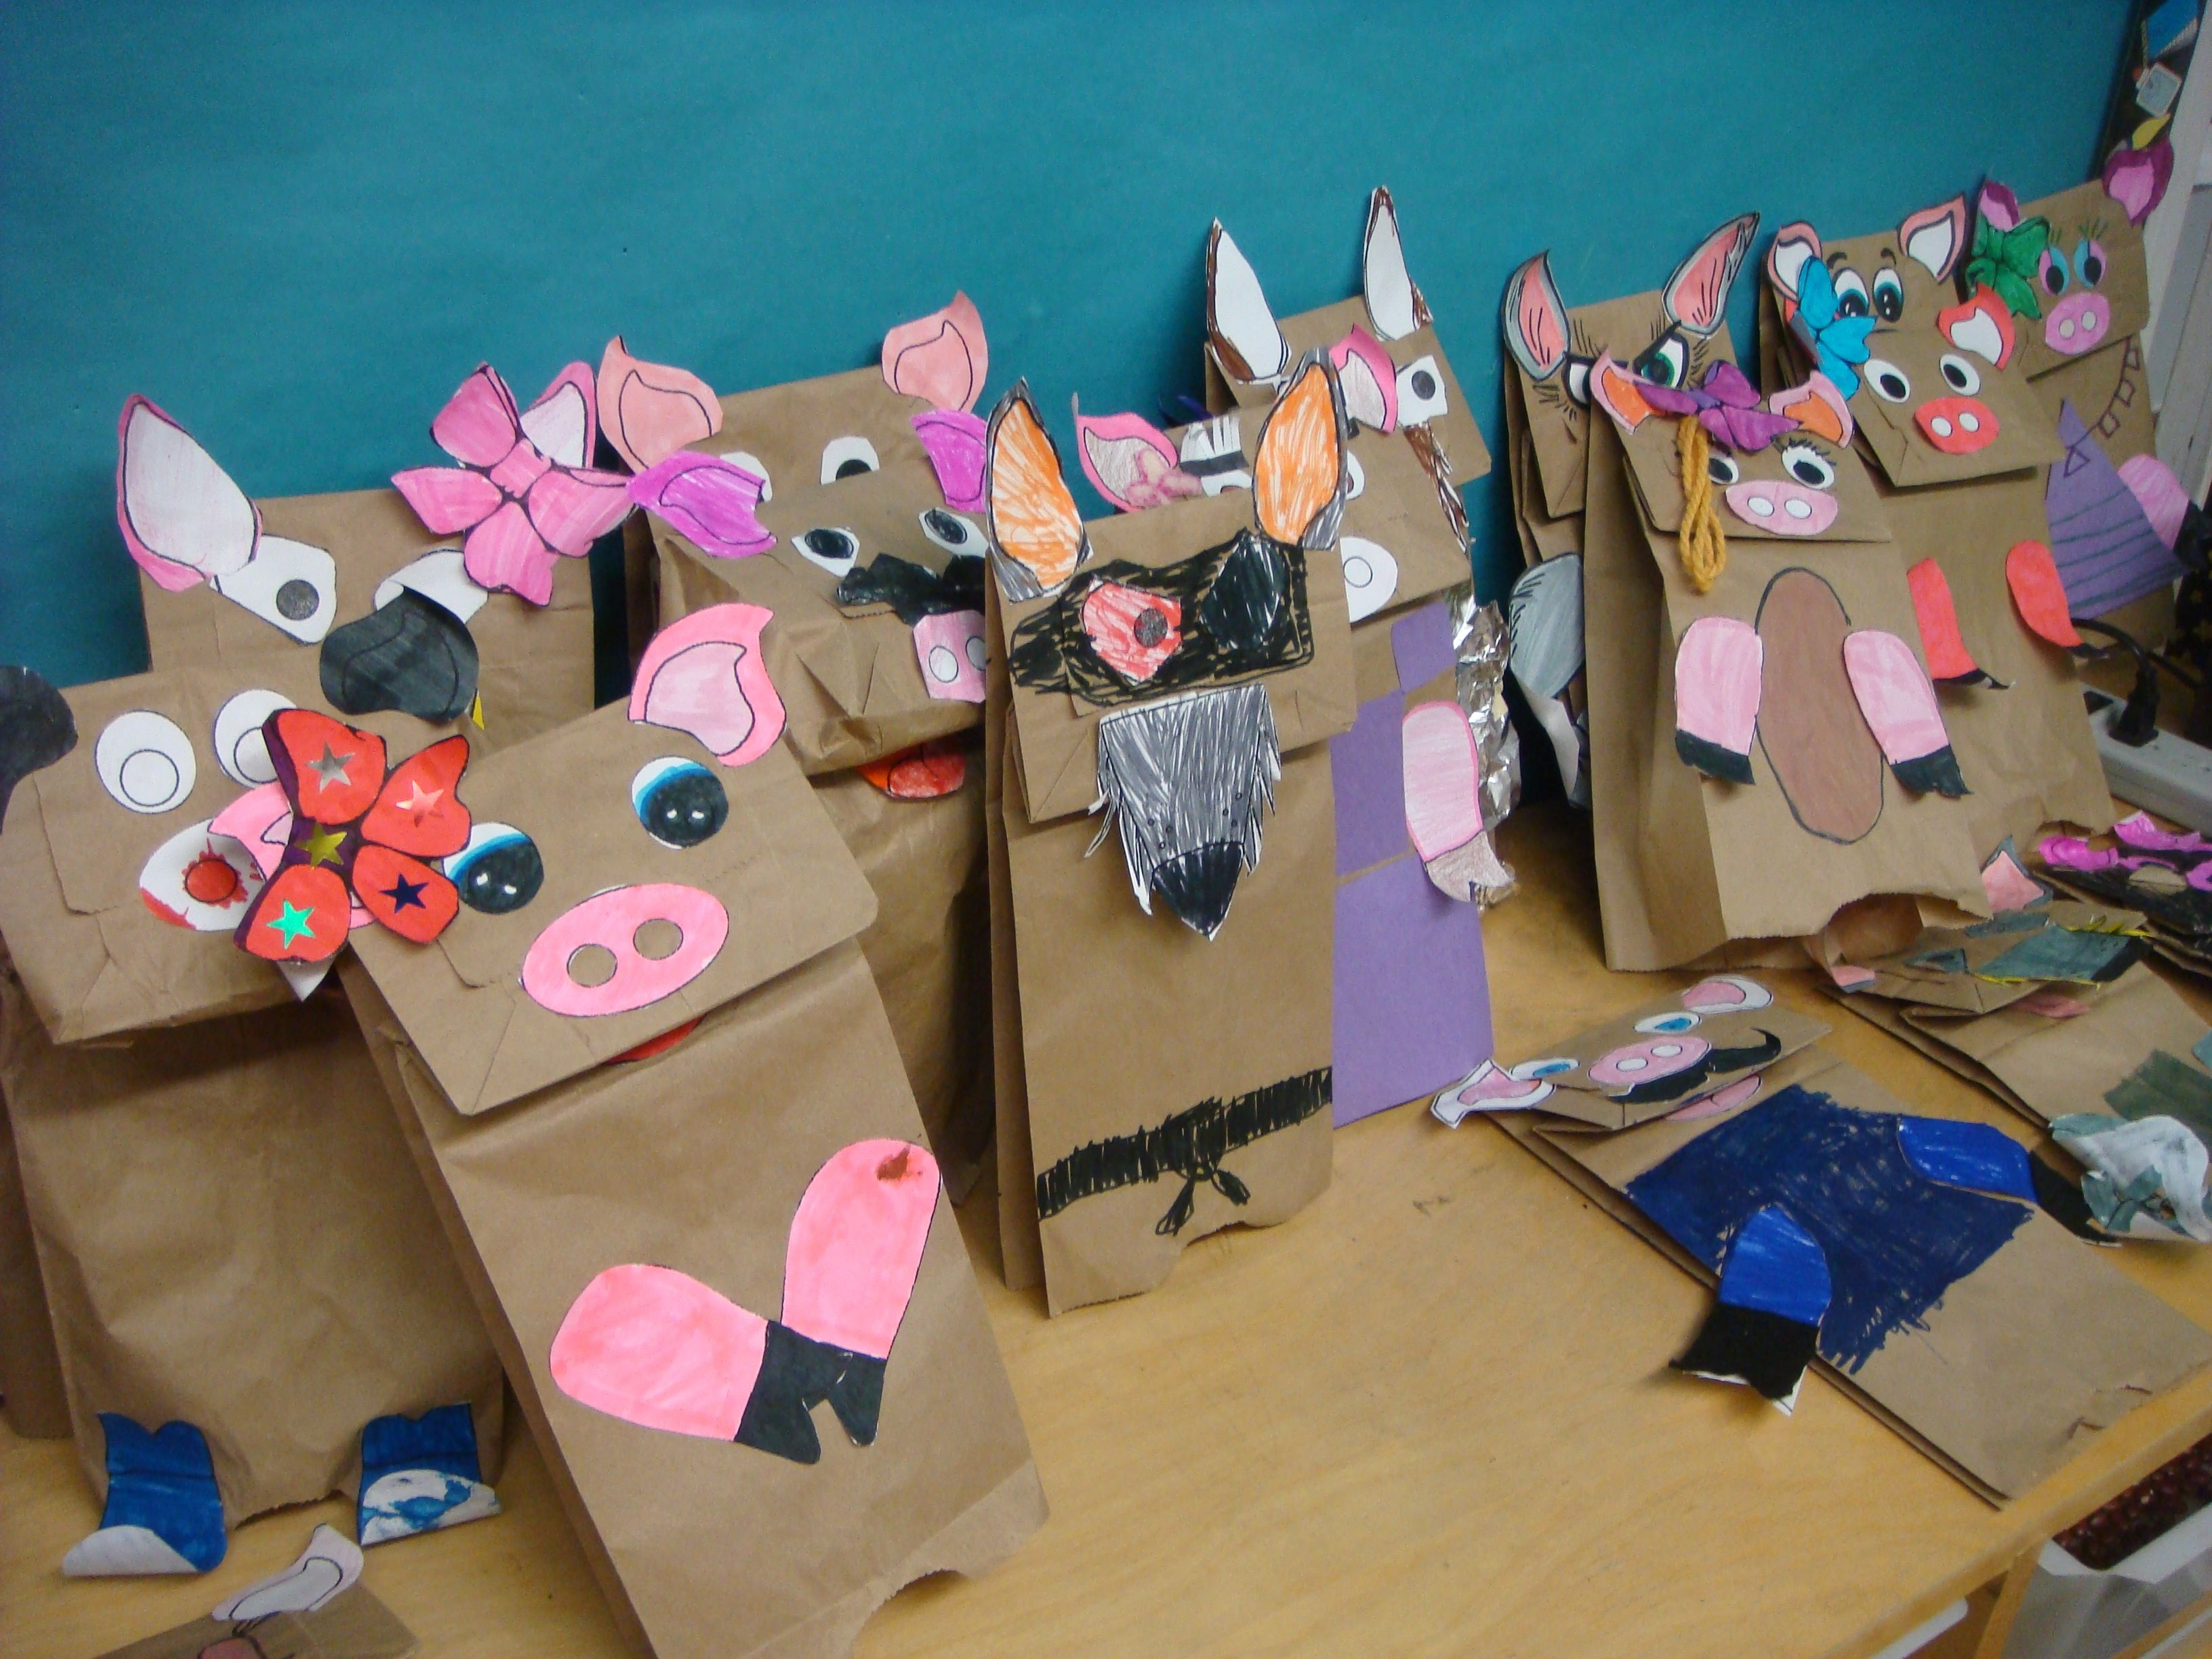 the three harey pigs essay Creative writing: the story of the three little pigs essays: over 180,000 creative writing: the story of the three little pigs essays, creative writing: the story of the three little pigs term papers, creative writing: the story of the three little pigs research paper, book reports 184 990 essays, term and research papers available for unlimited access.